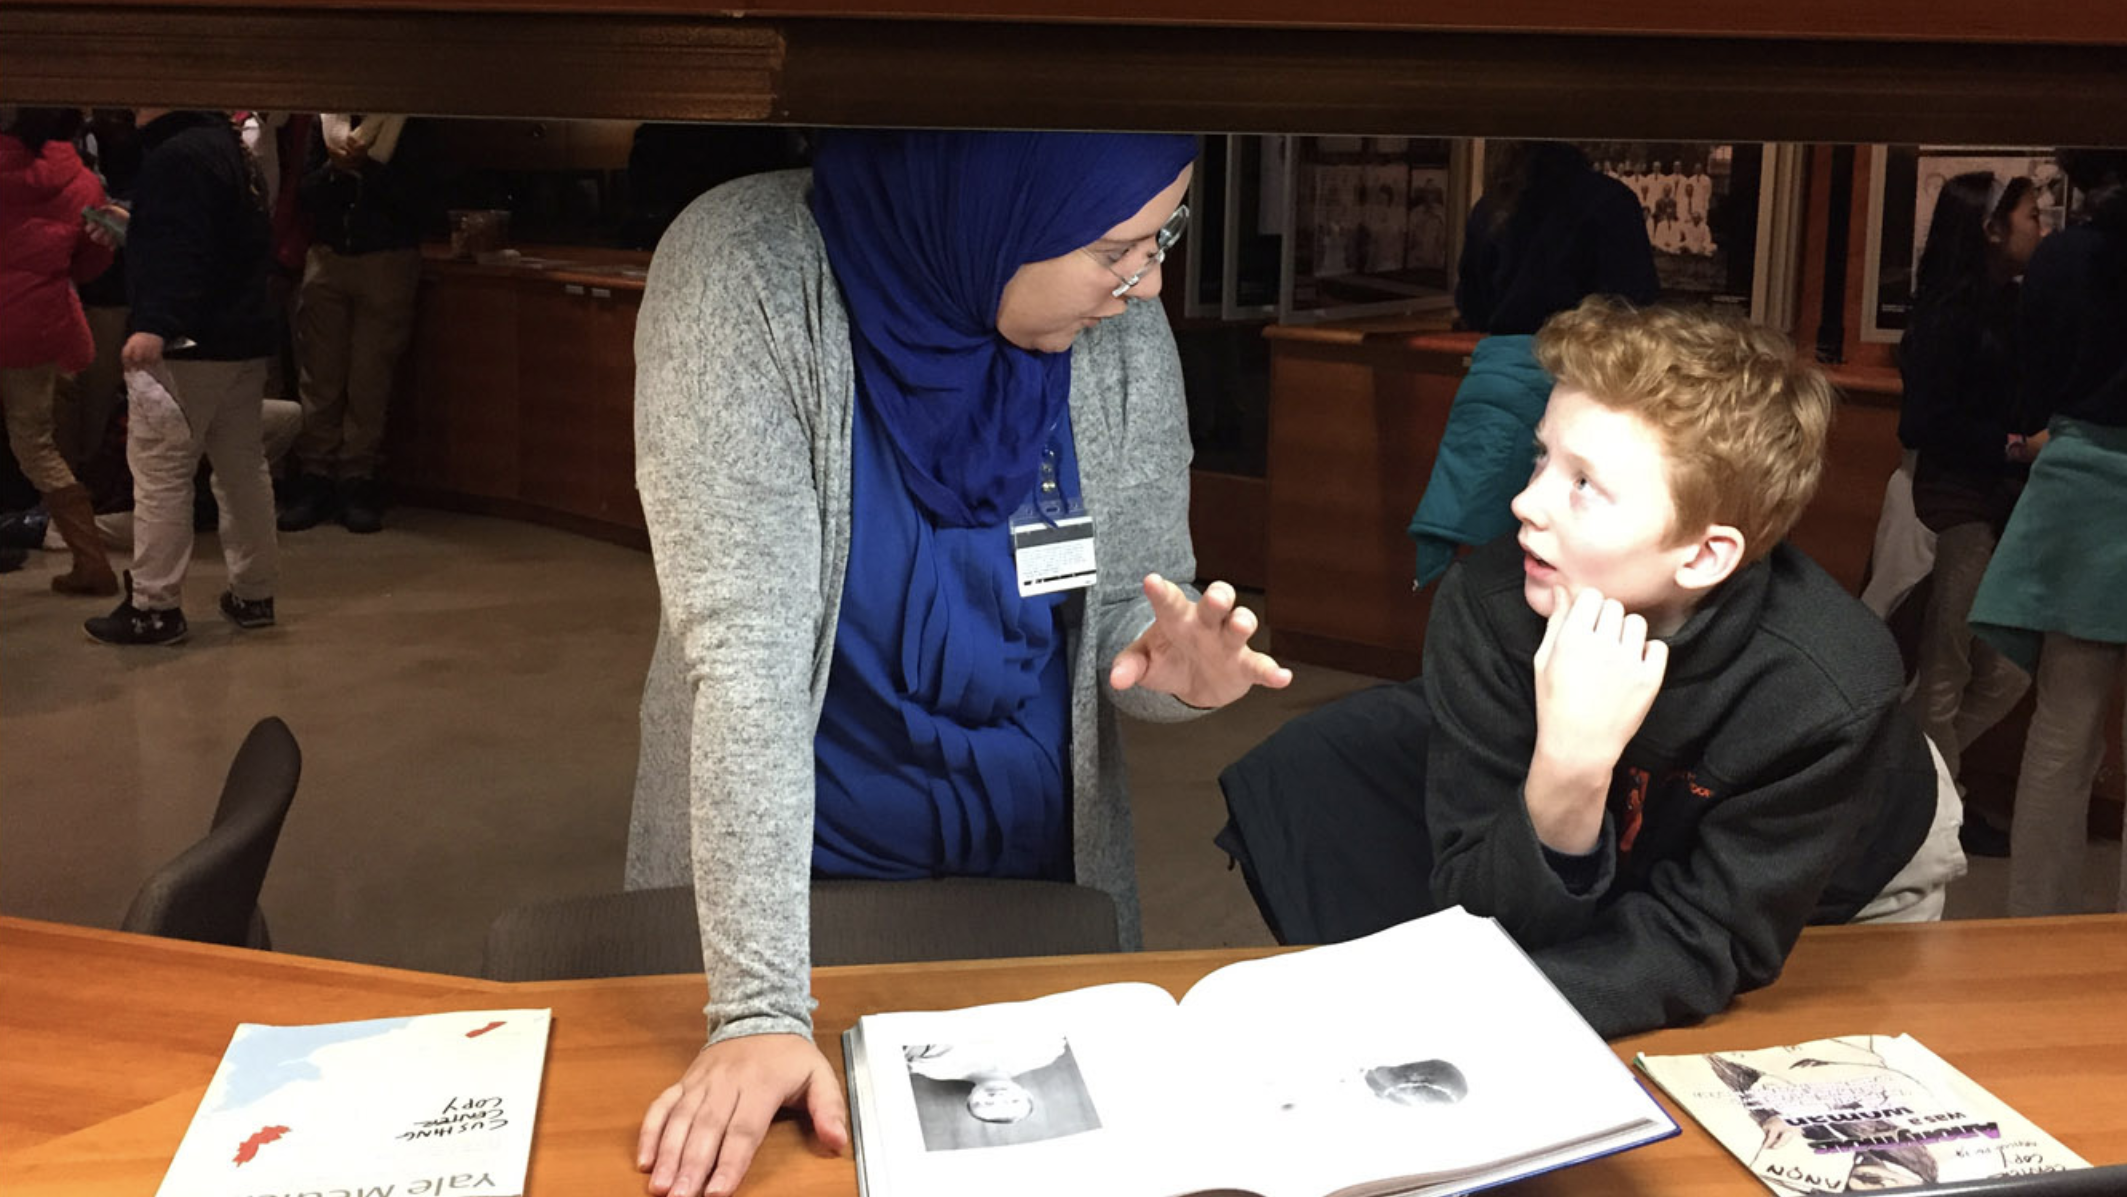 A woman in blue jihad talking to a boy and an open book in front of them